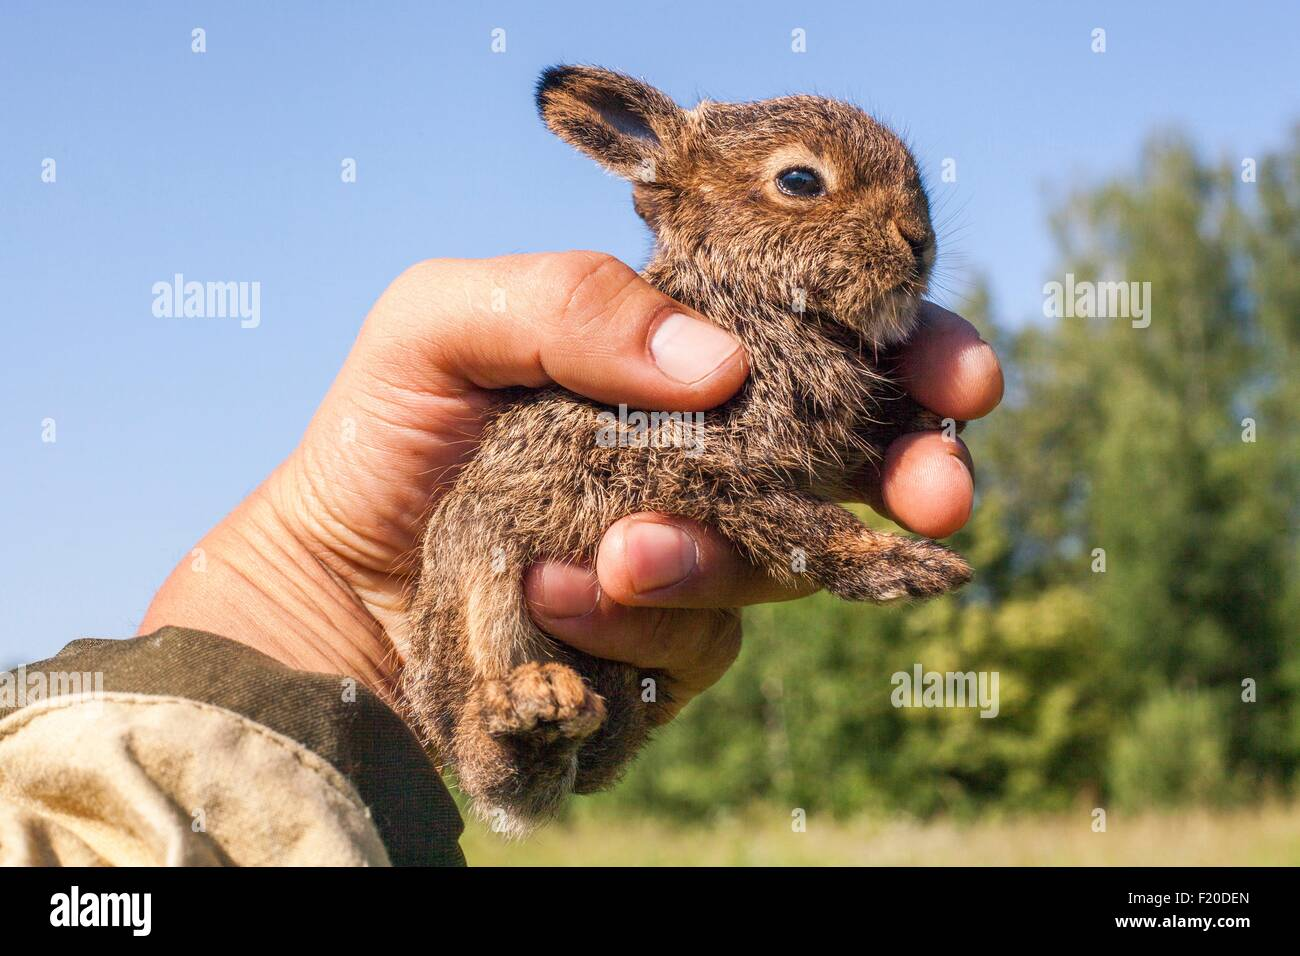 Close up of male hand holding up tiny juvenile rabbit - Stock Image